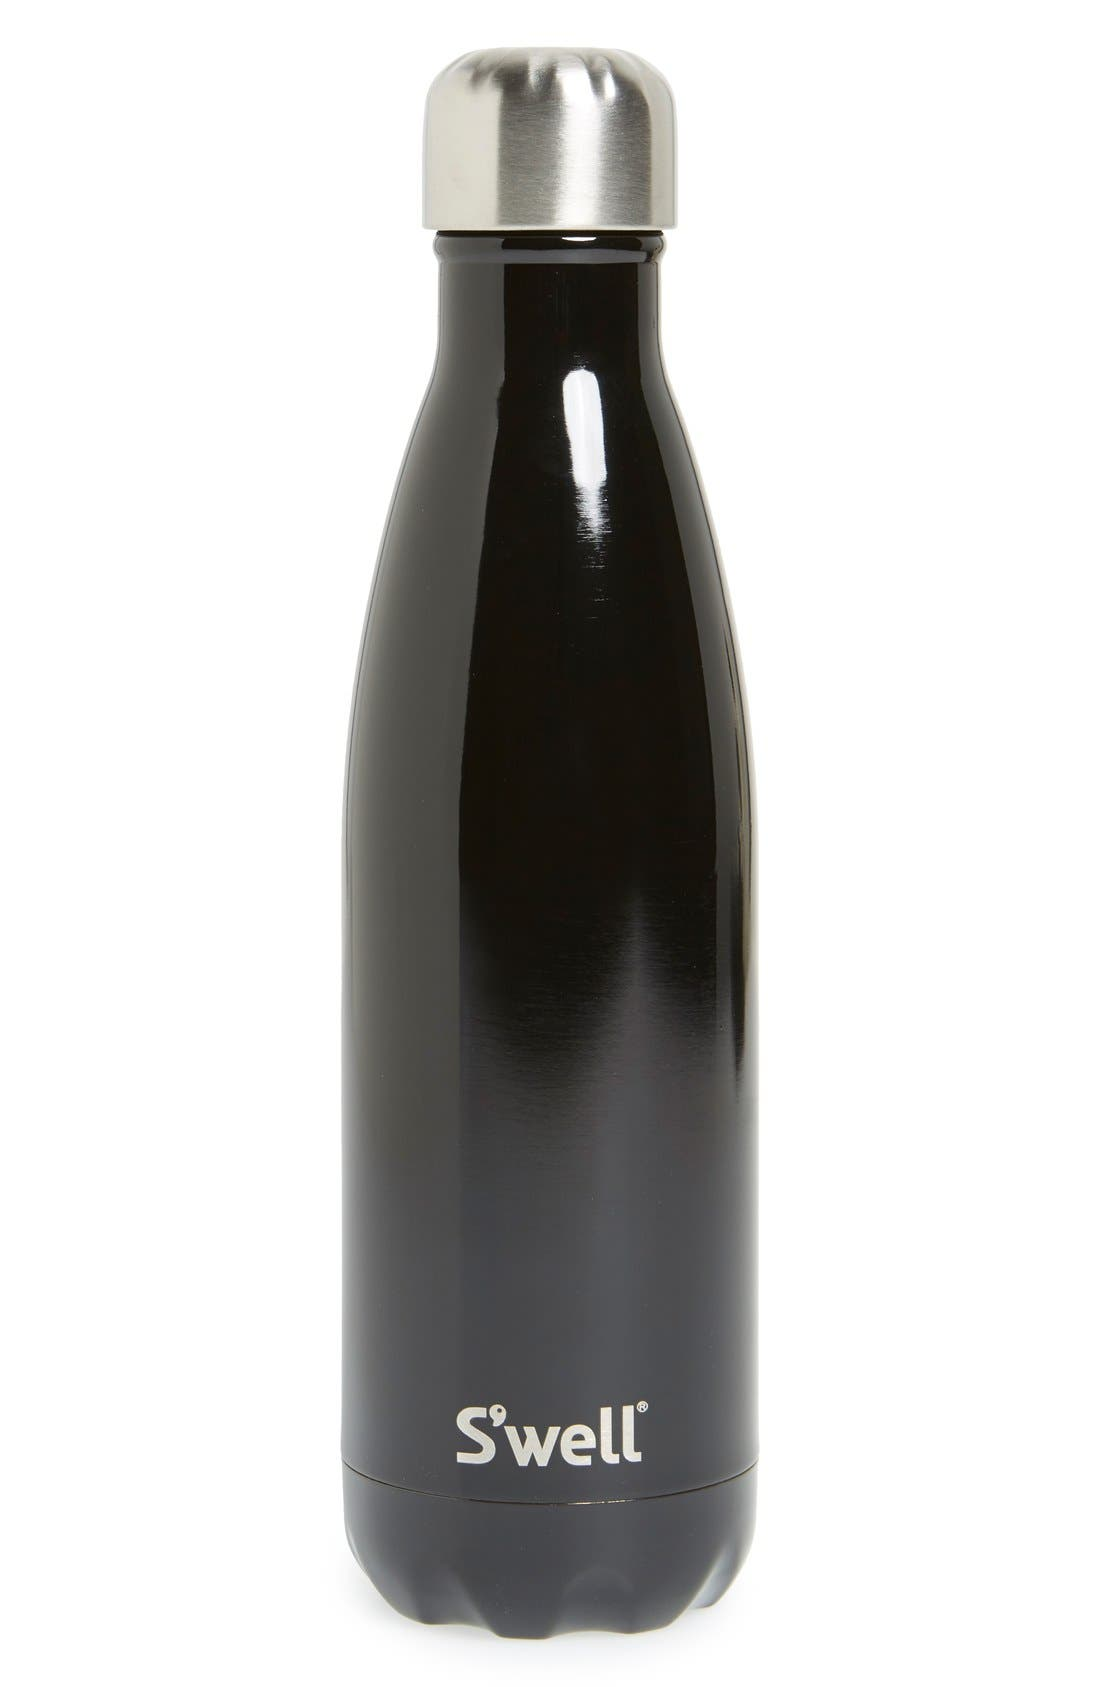 S'well 'Shimmer Collection - Midnight Black' Stainless Steel Water Bottle